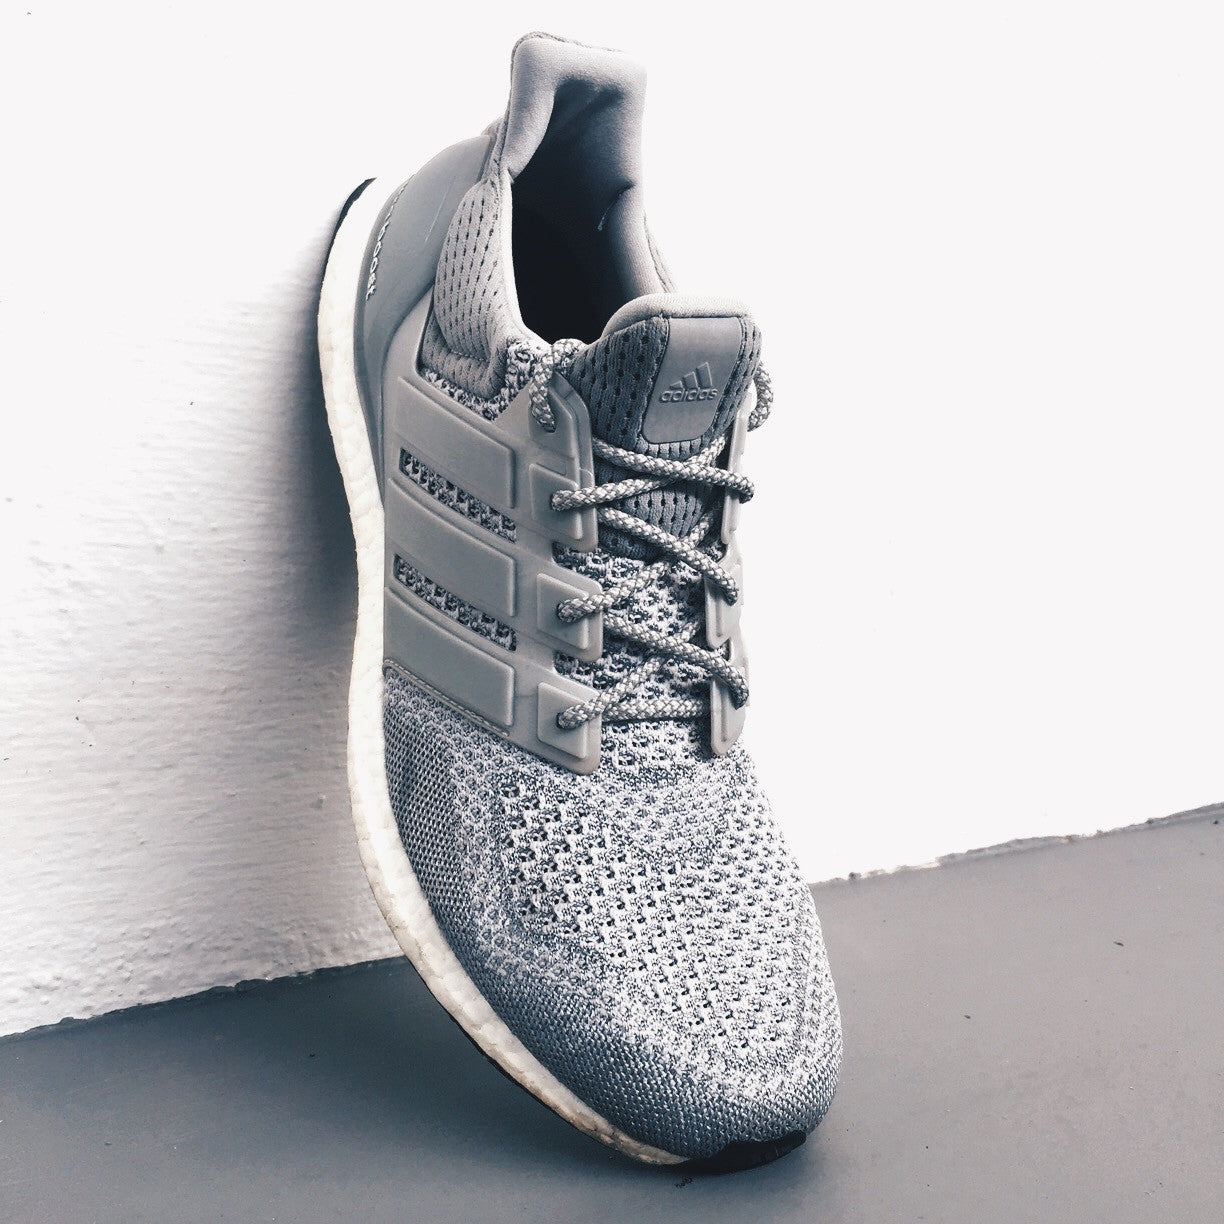 How To Lace Your Sneakers / Swap Your Shoe Laces : ADIDAS Ultra Boost 1.0 Silver Grey Reflective LTD